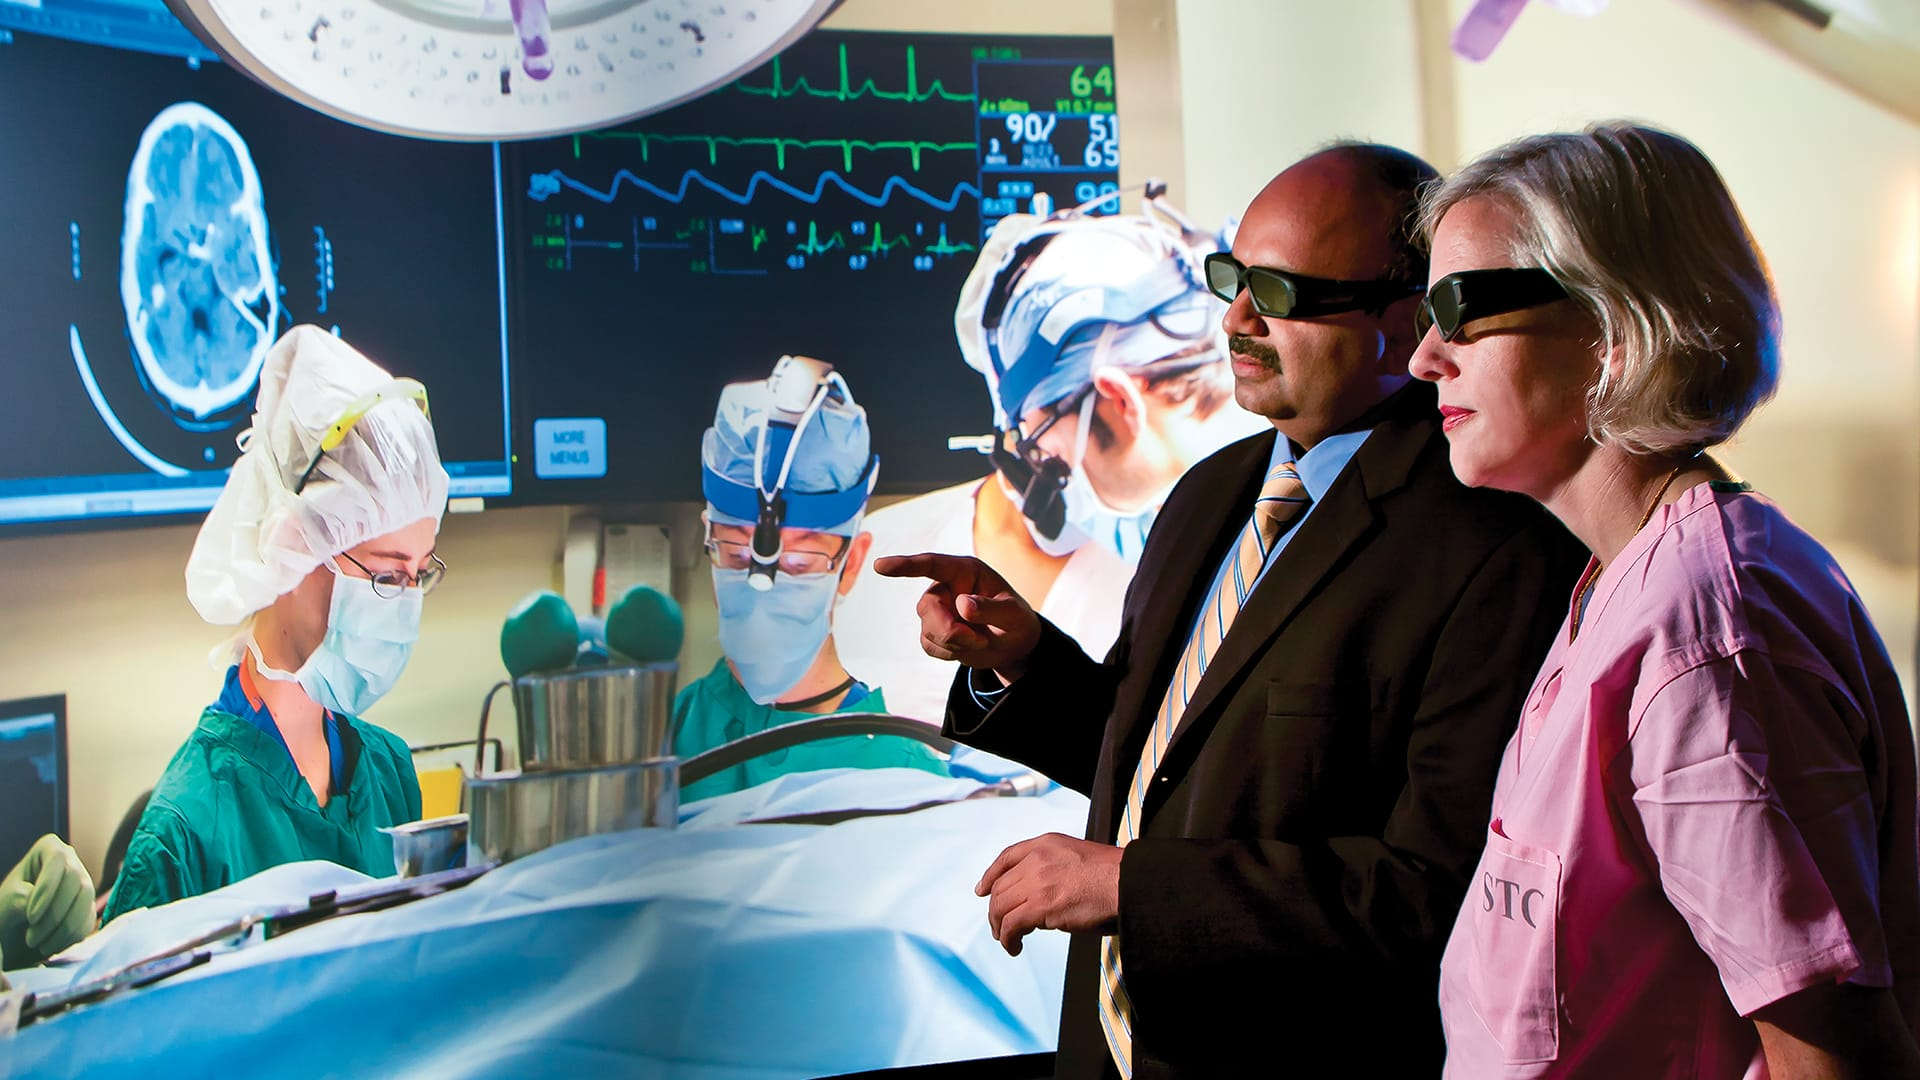 Researchers Revolutionize Health Care Using Augmented Reality